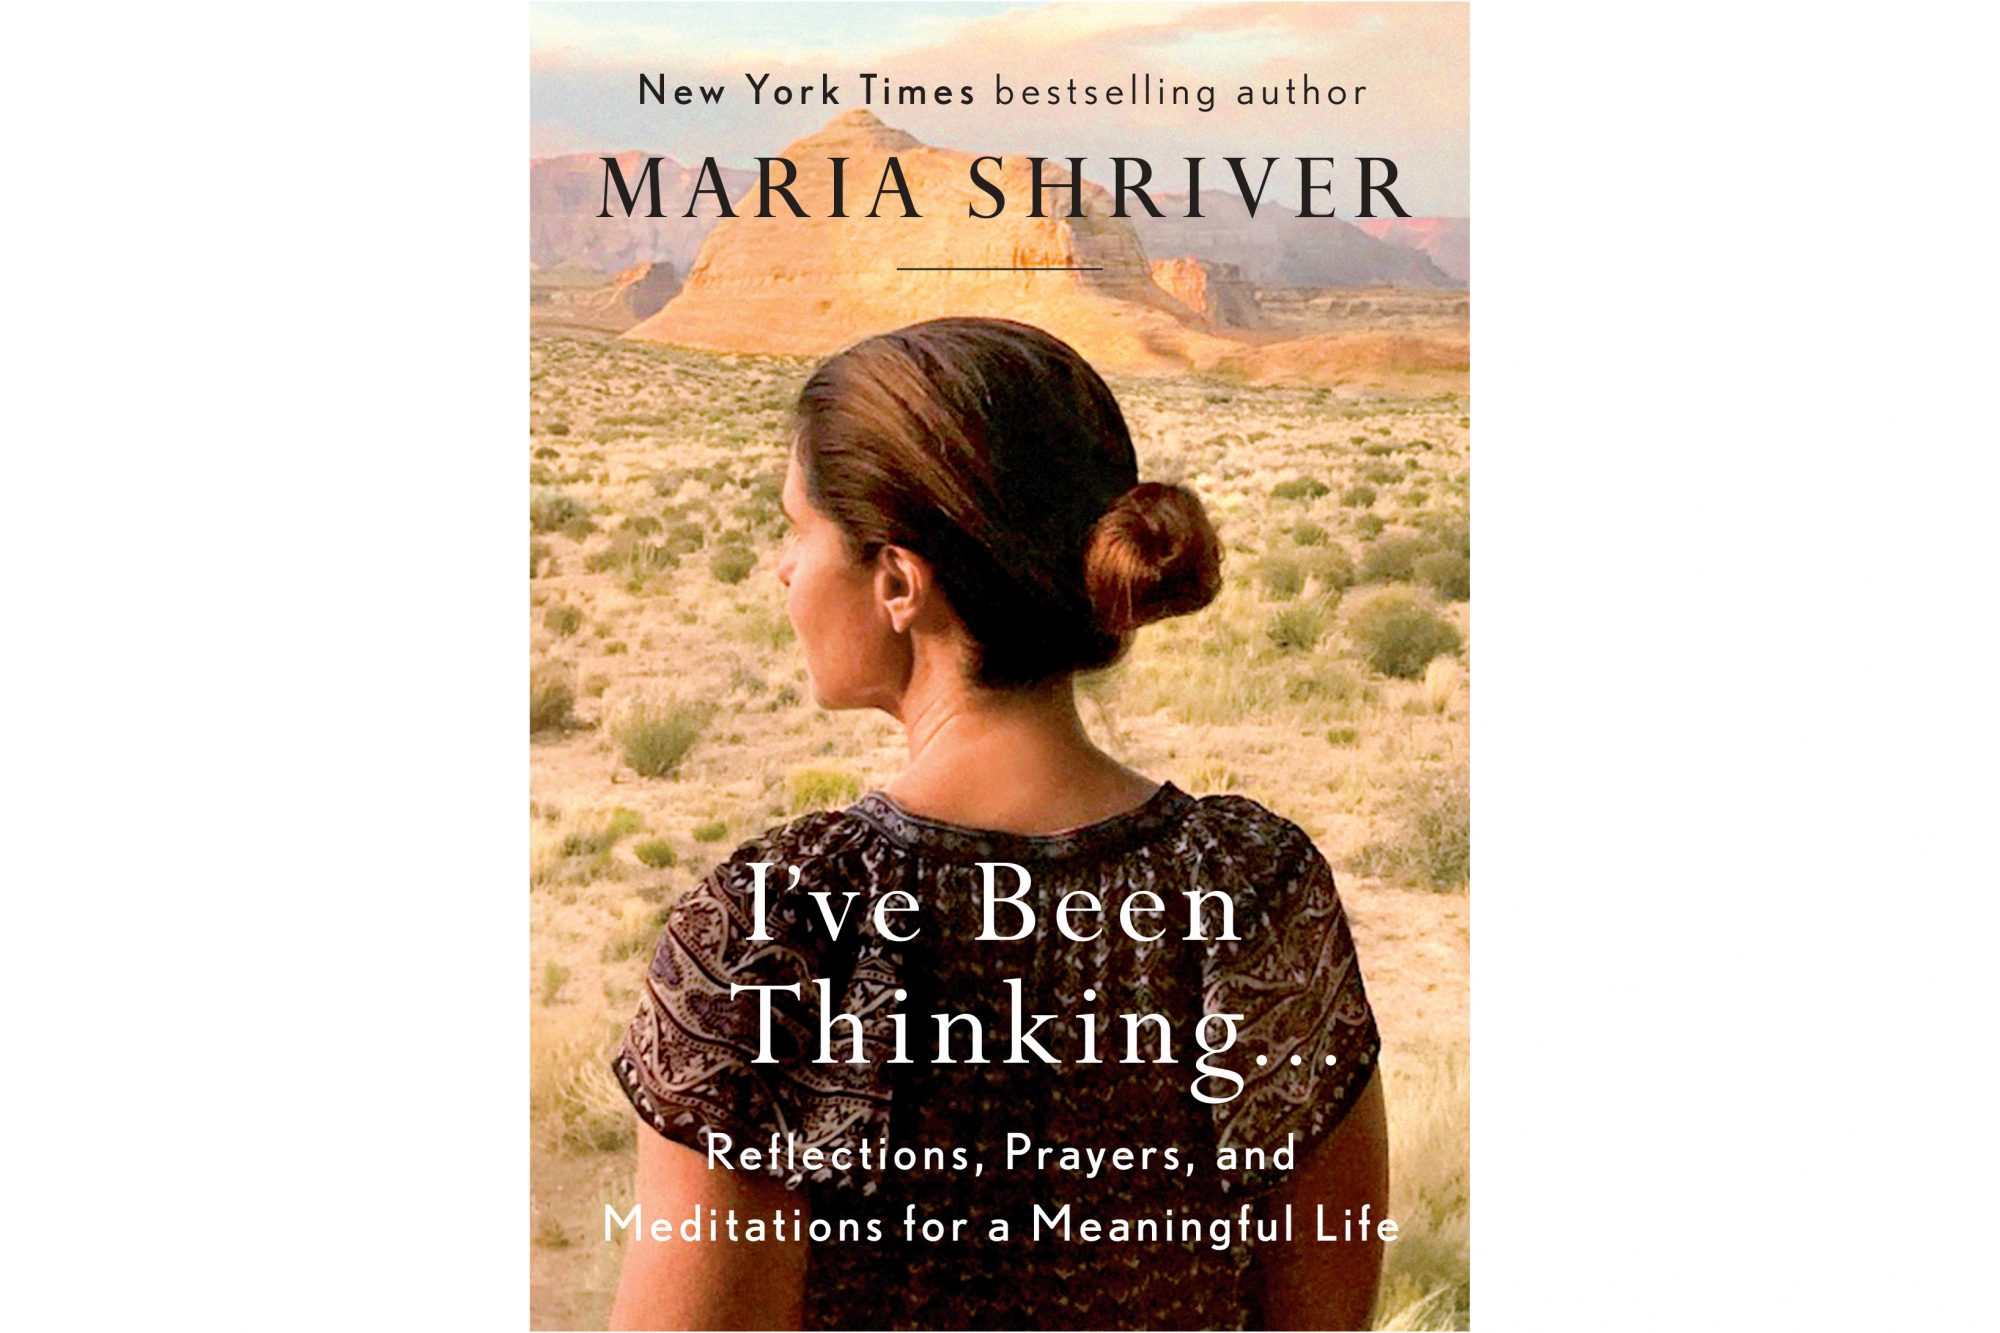 I've Been Thinking, by Maria Shriver (FB BOOKS)